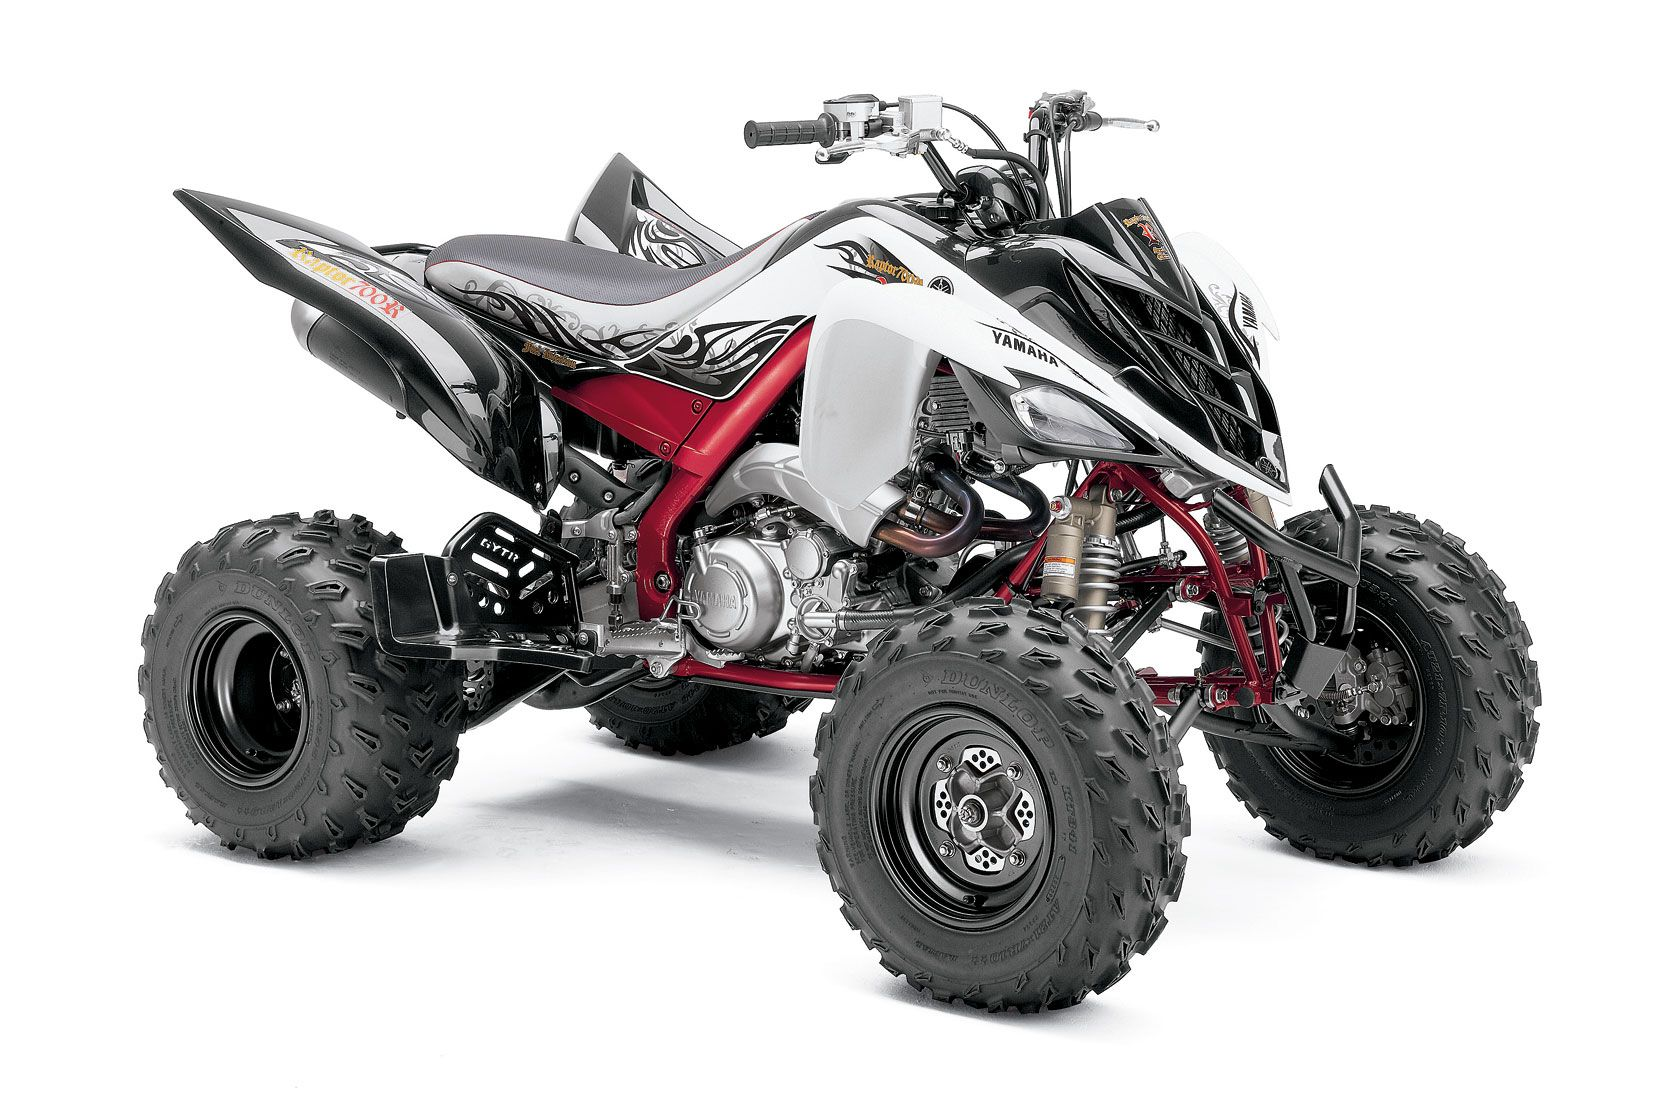 Vmaxtanks Batteries Work Great For All Four Wheelers Visit